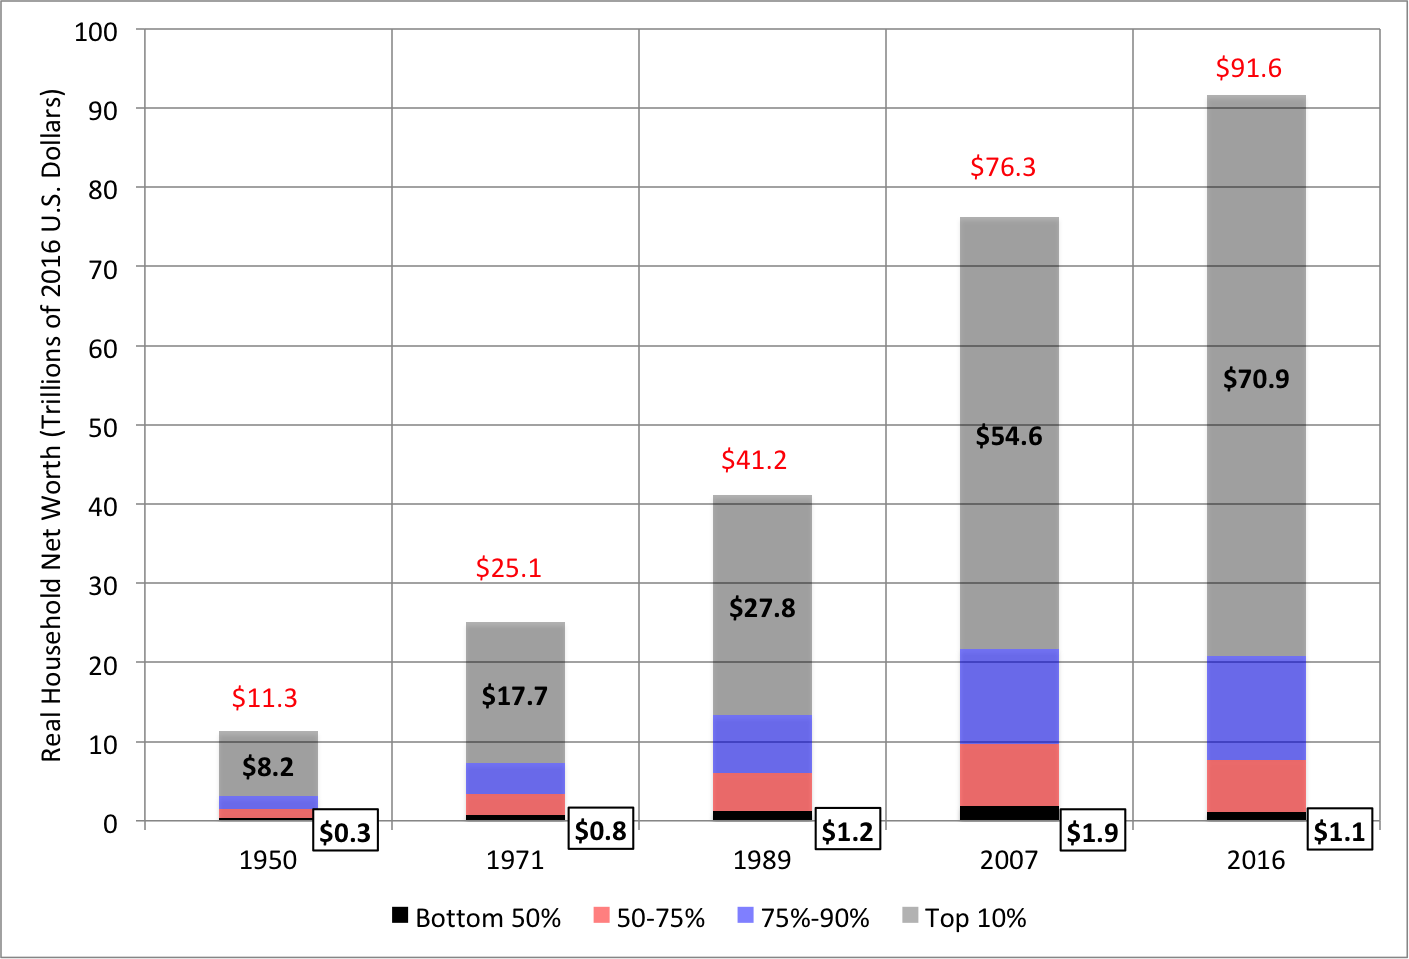 Note: Each bar (as well as its red data label) shows the aggregate net worth of households and nonprofits in trillions of 2016 U.S. dollars, using the end-year CPI as the deflator. The KSS wealth shares are used to decompose the ownership by wealth group, with the holdings of the bottom 50% shown in black, as well as in the rectangles. Those of the top 10% are shown by the gray-shaded regions. Sources: Table 4 of  Kuhn, Schularick and Steins  (including a 2016 update kindly provided by these authors), Financial Accounts of the United States and the Bureau of Labor Statistics.